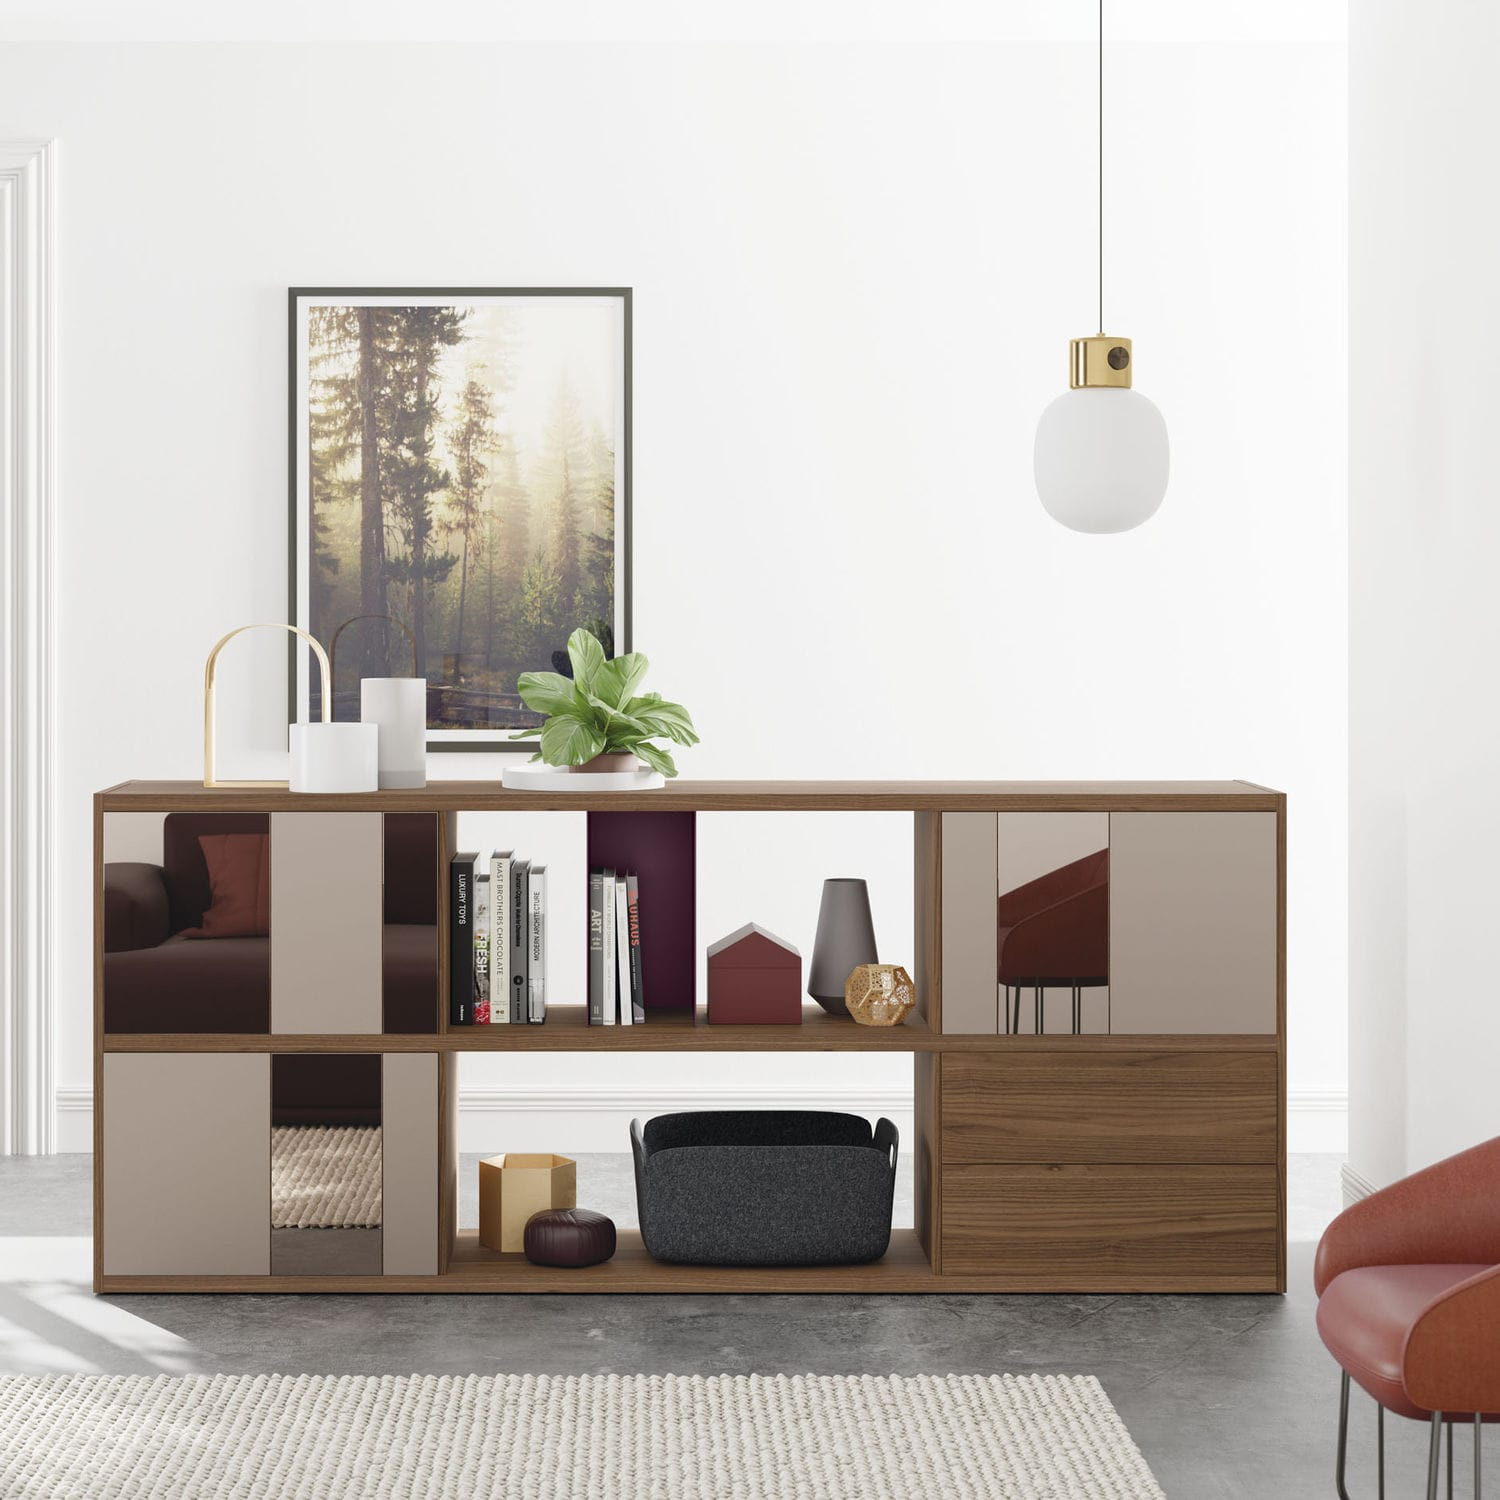 Modular Bookcase Room Divider Contemporary Lacquered